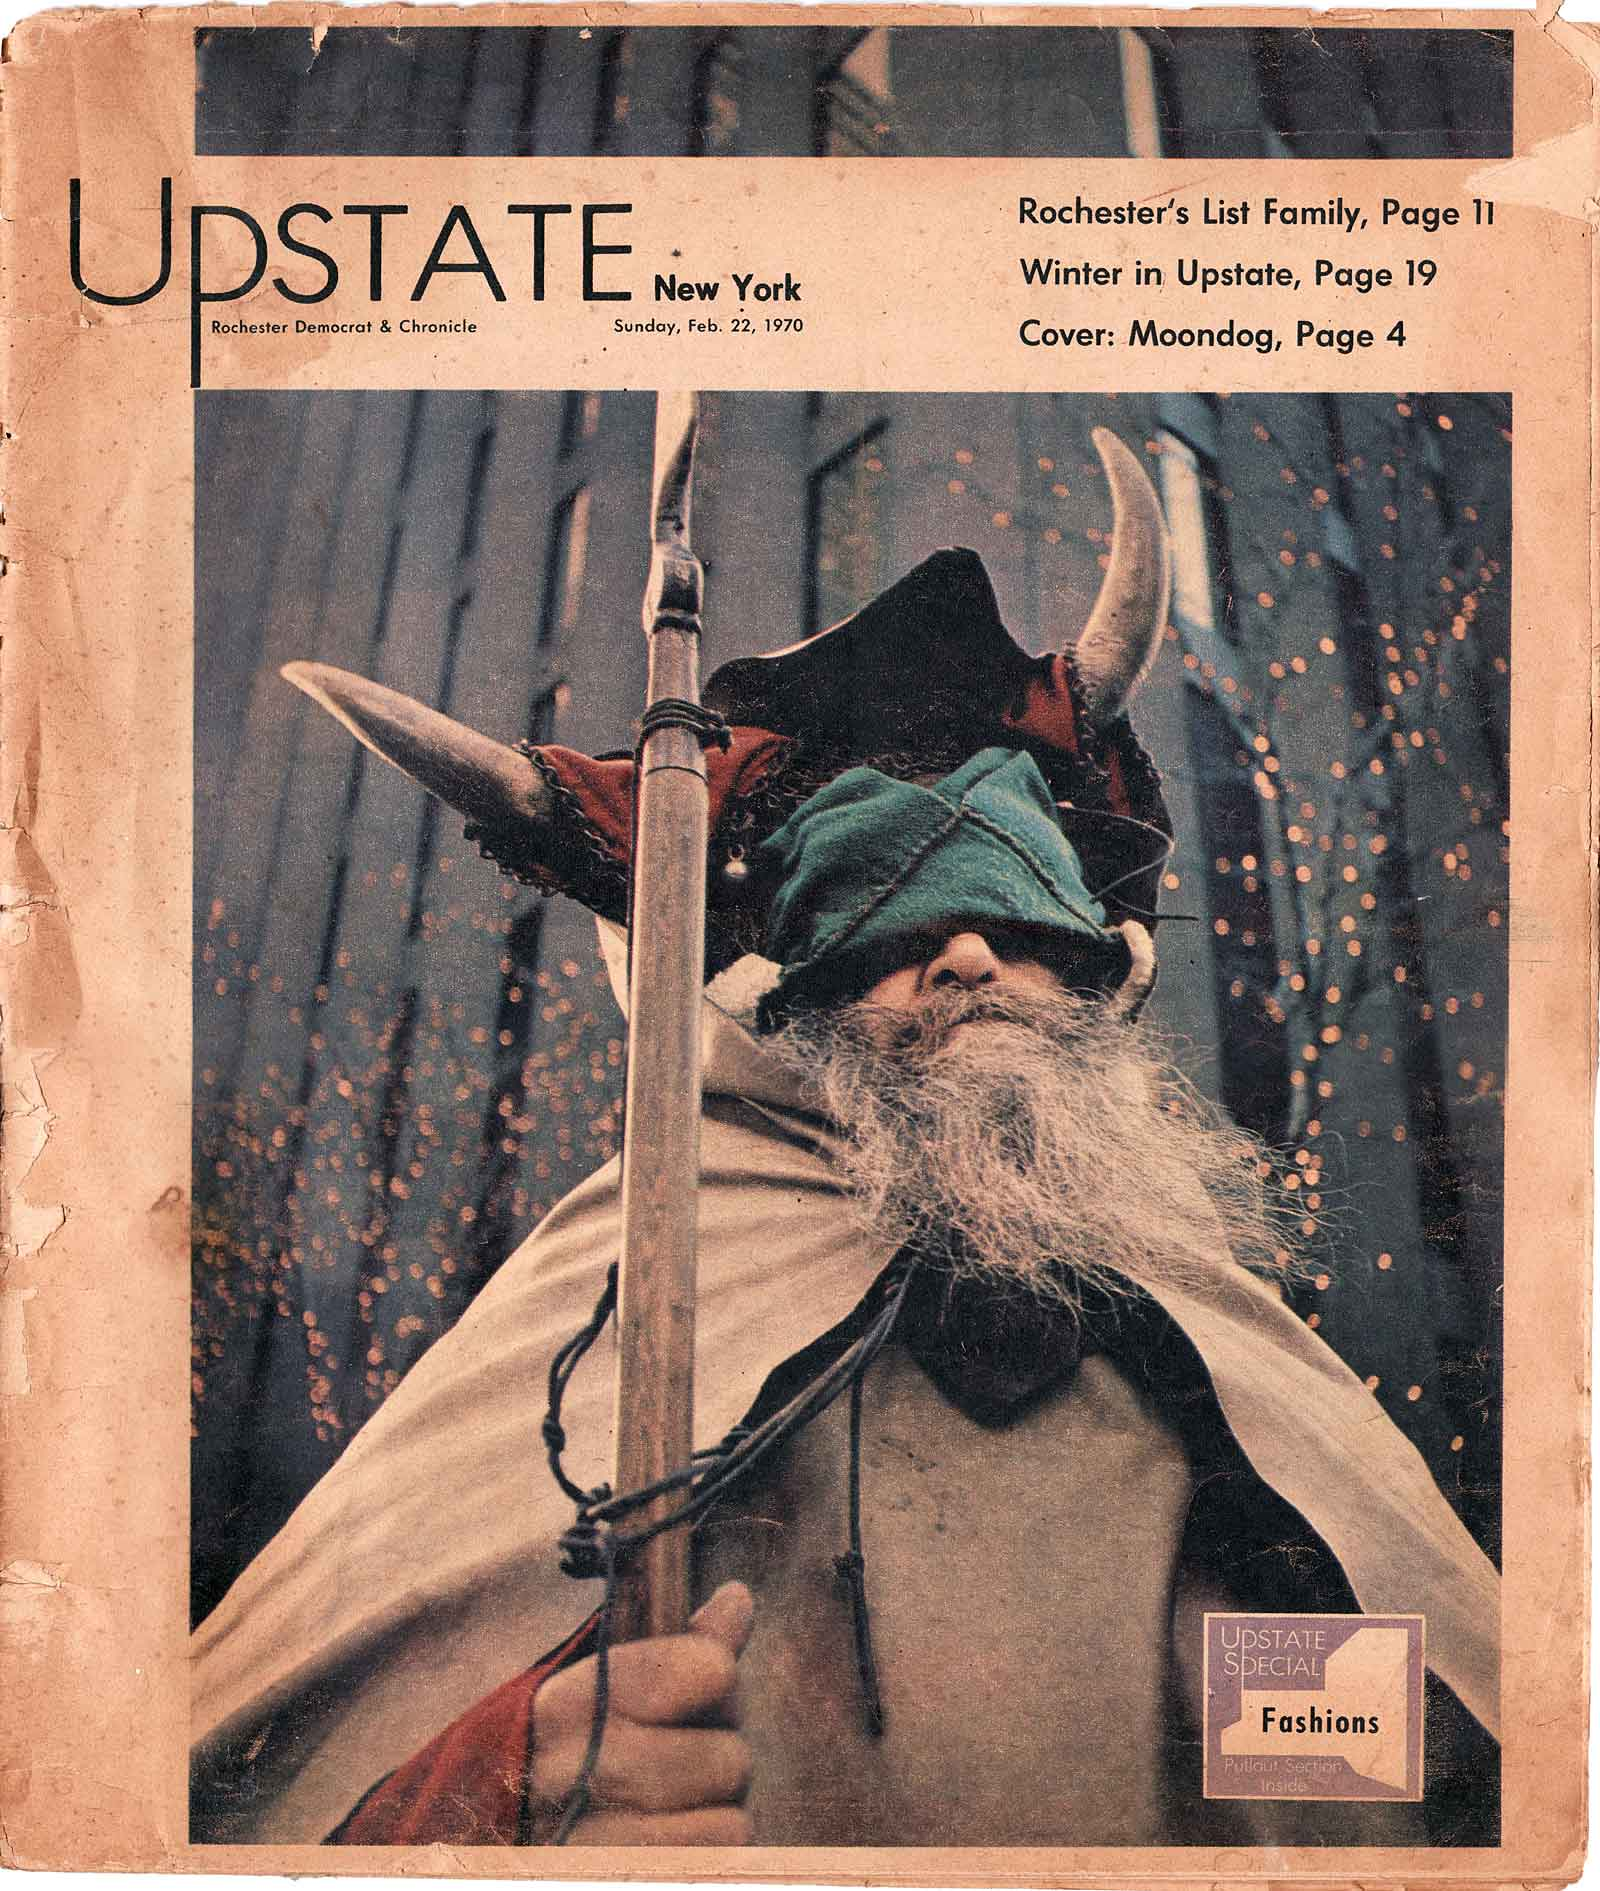 Upstate Magazine story on Moondog from 1970 Democrat & Chronicle in Rochester, New York